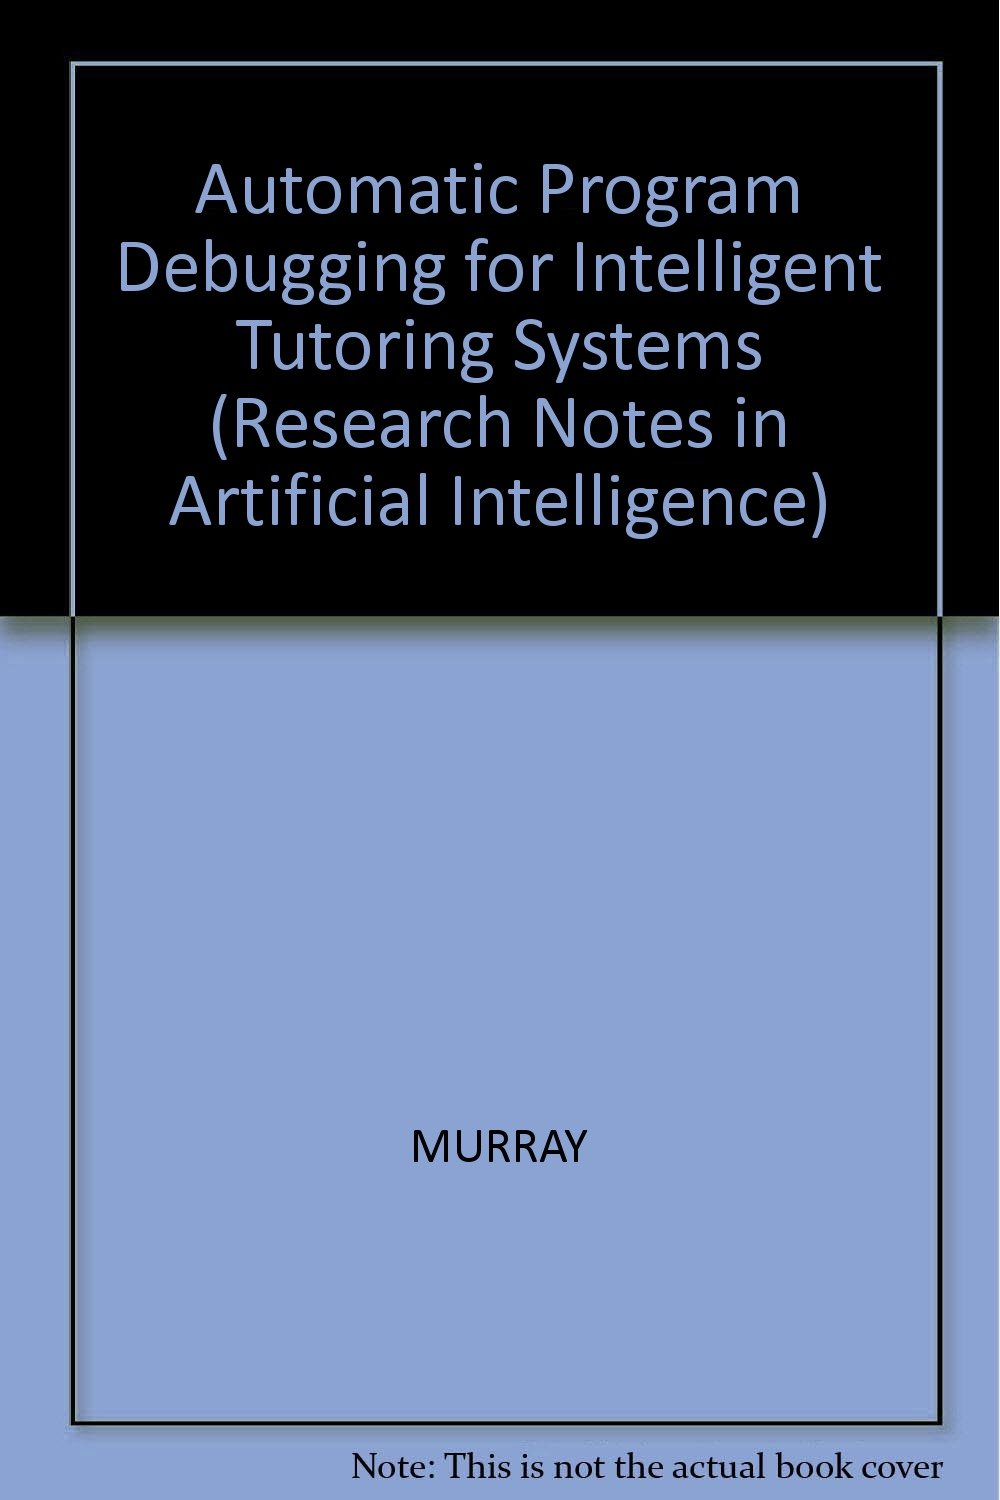 Automatic Program Debugging for Intelligent Tutoring Systems (Research Notes in Artificial Intelligence)